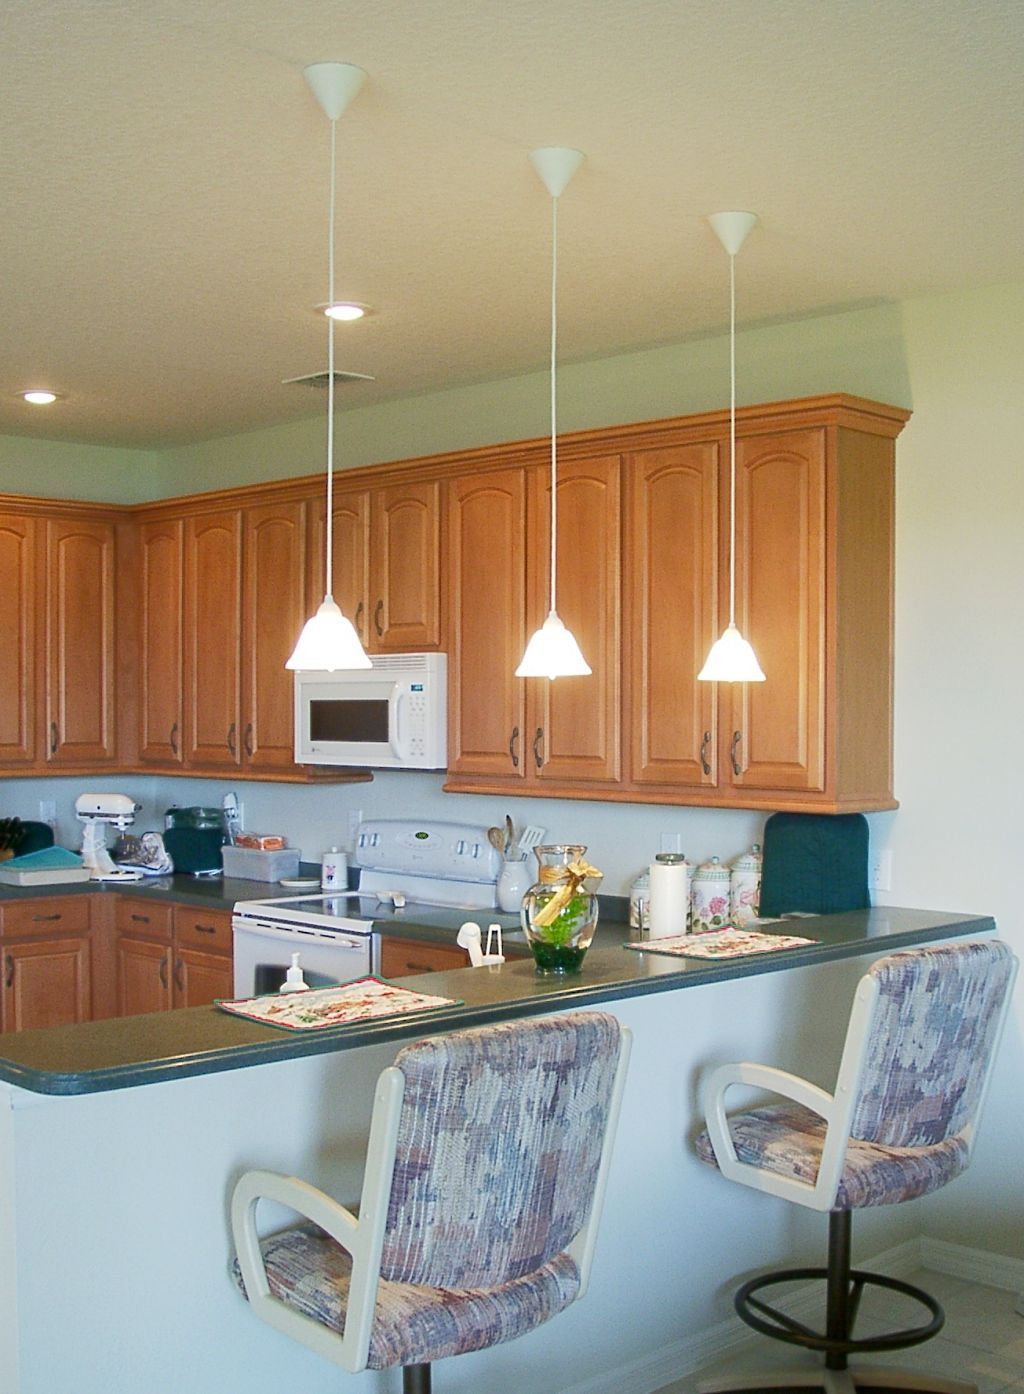 Low hanging mini pendant lights over kitchen island for an for Kitchen pendant lighting island